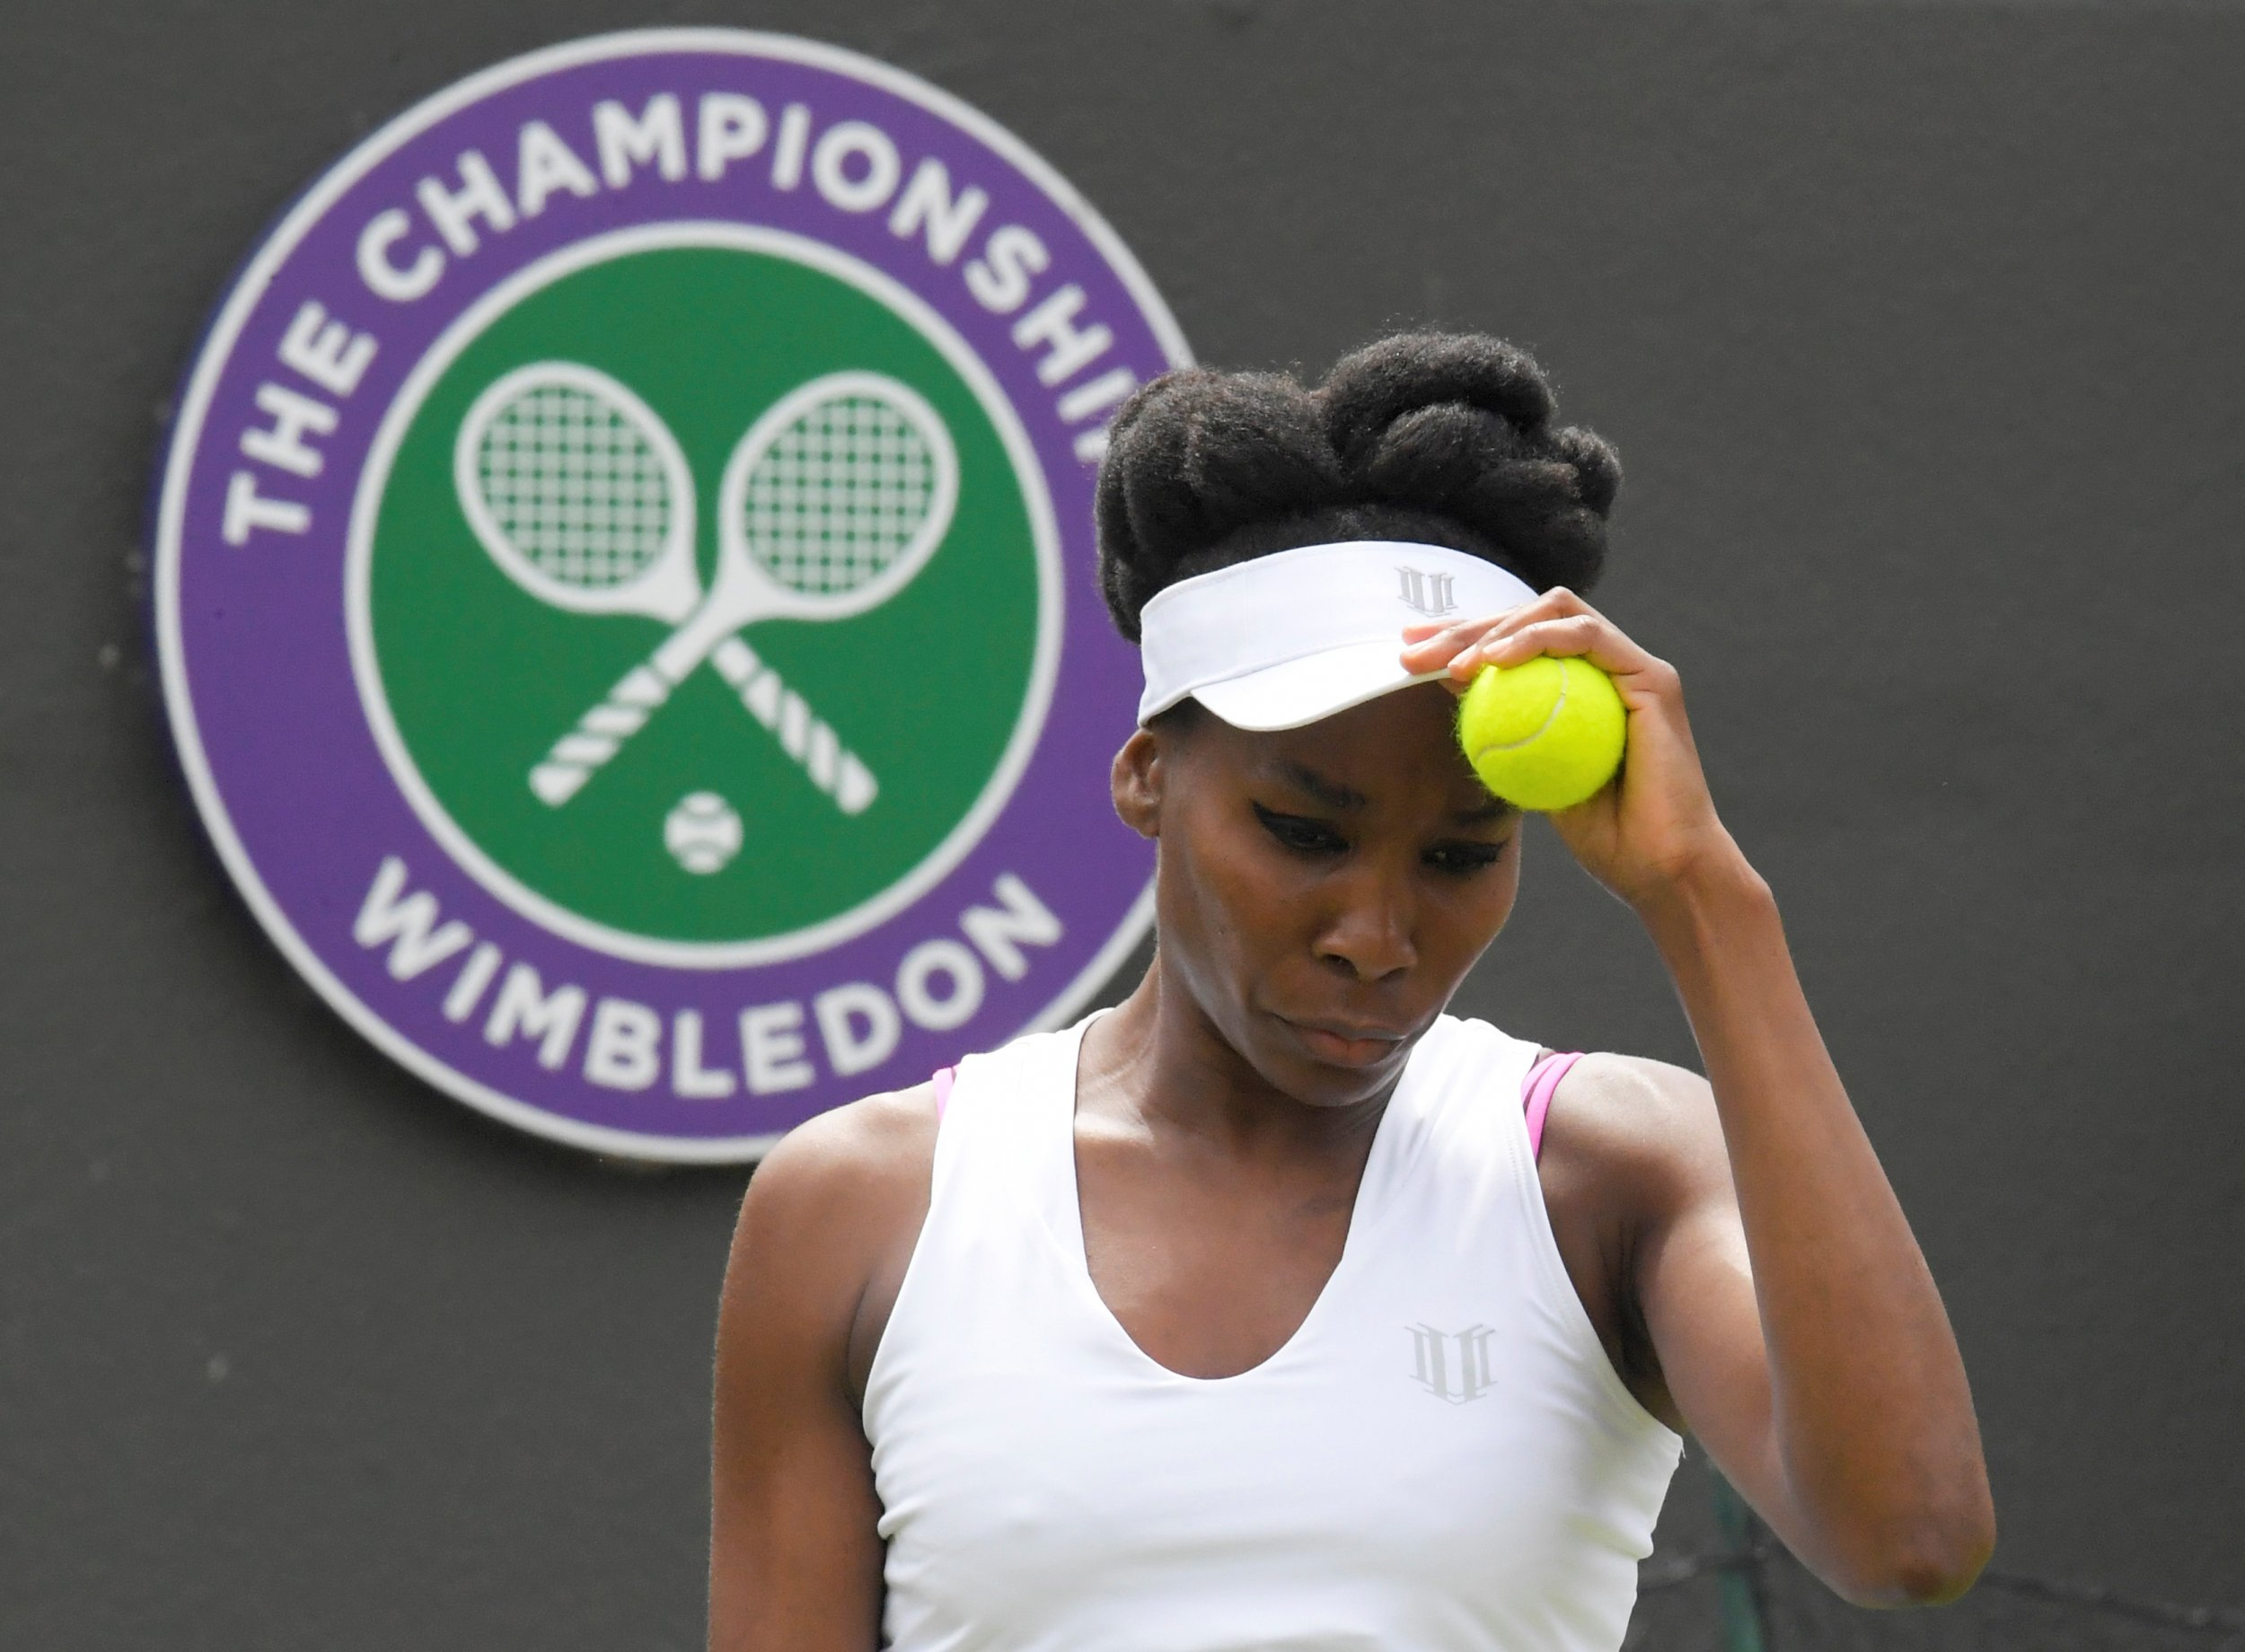 Venus Williams Breaks Down in Wimbledon Press Conference Over